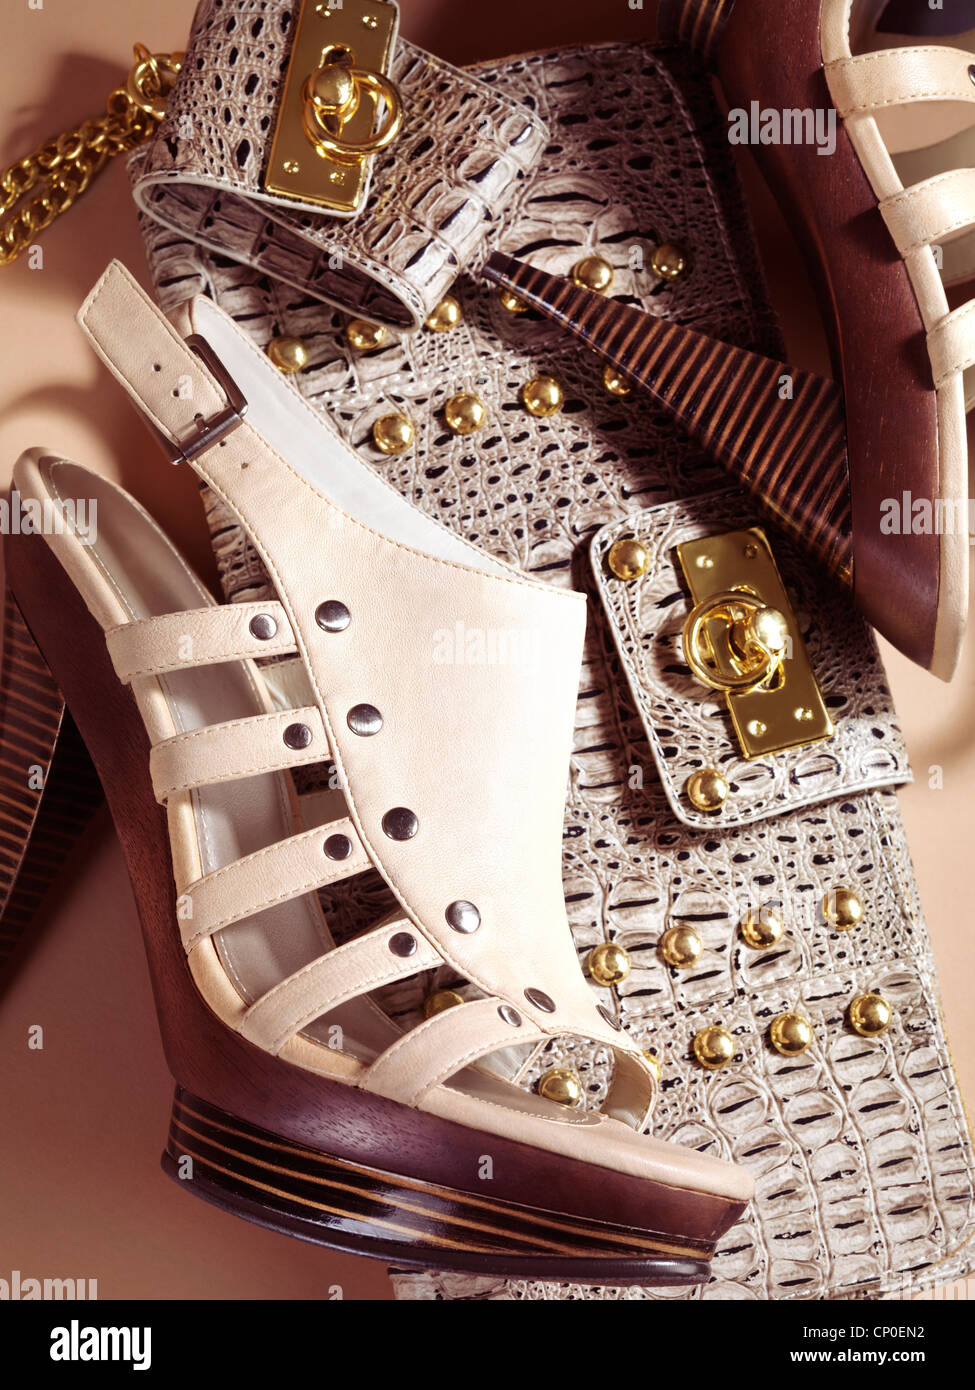 High heel platform shoes and a clutch. Fashion accessory still life. - Stock Image